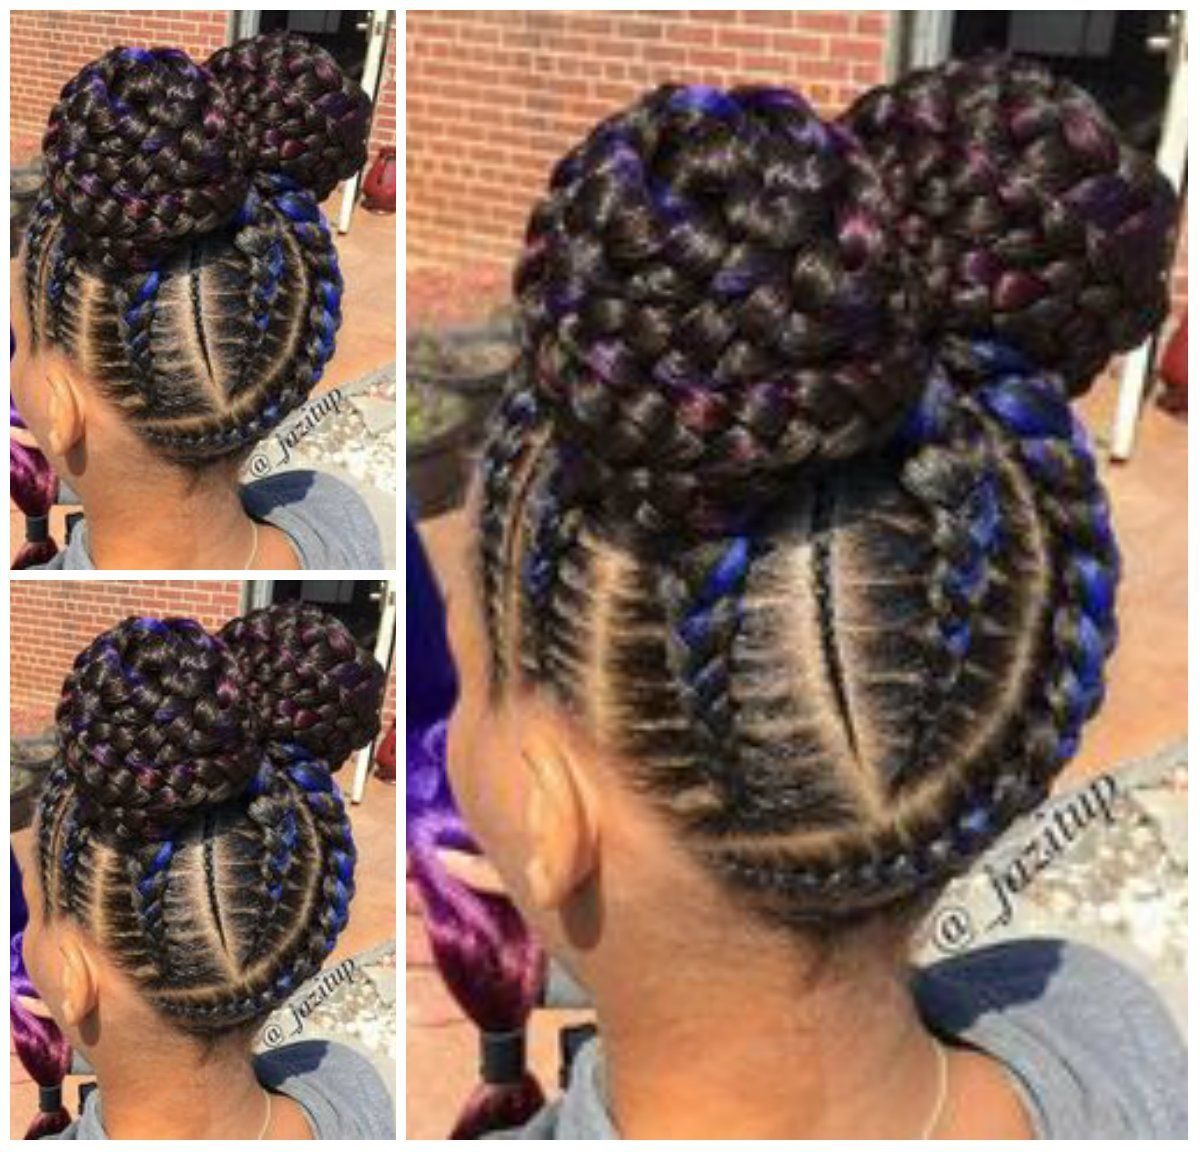 29 Braided Cornrows With Buns For Little Black Girls Afrocosmopolitan Kids Braided Hairstyles Hair Styles Braids For Black Hair